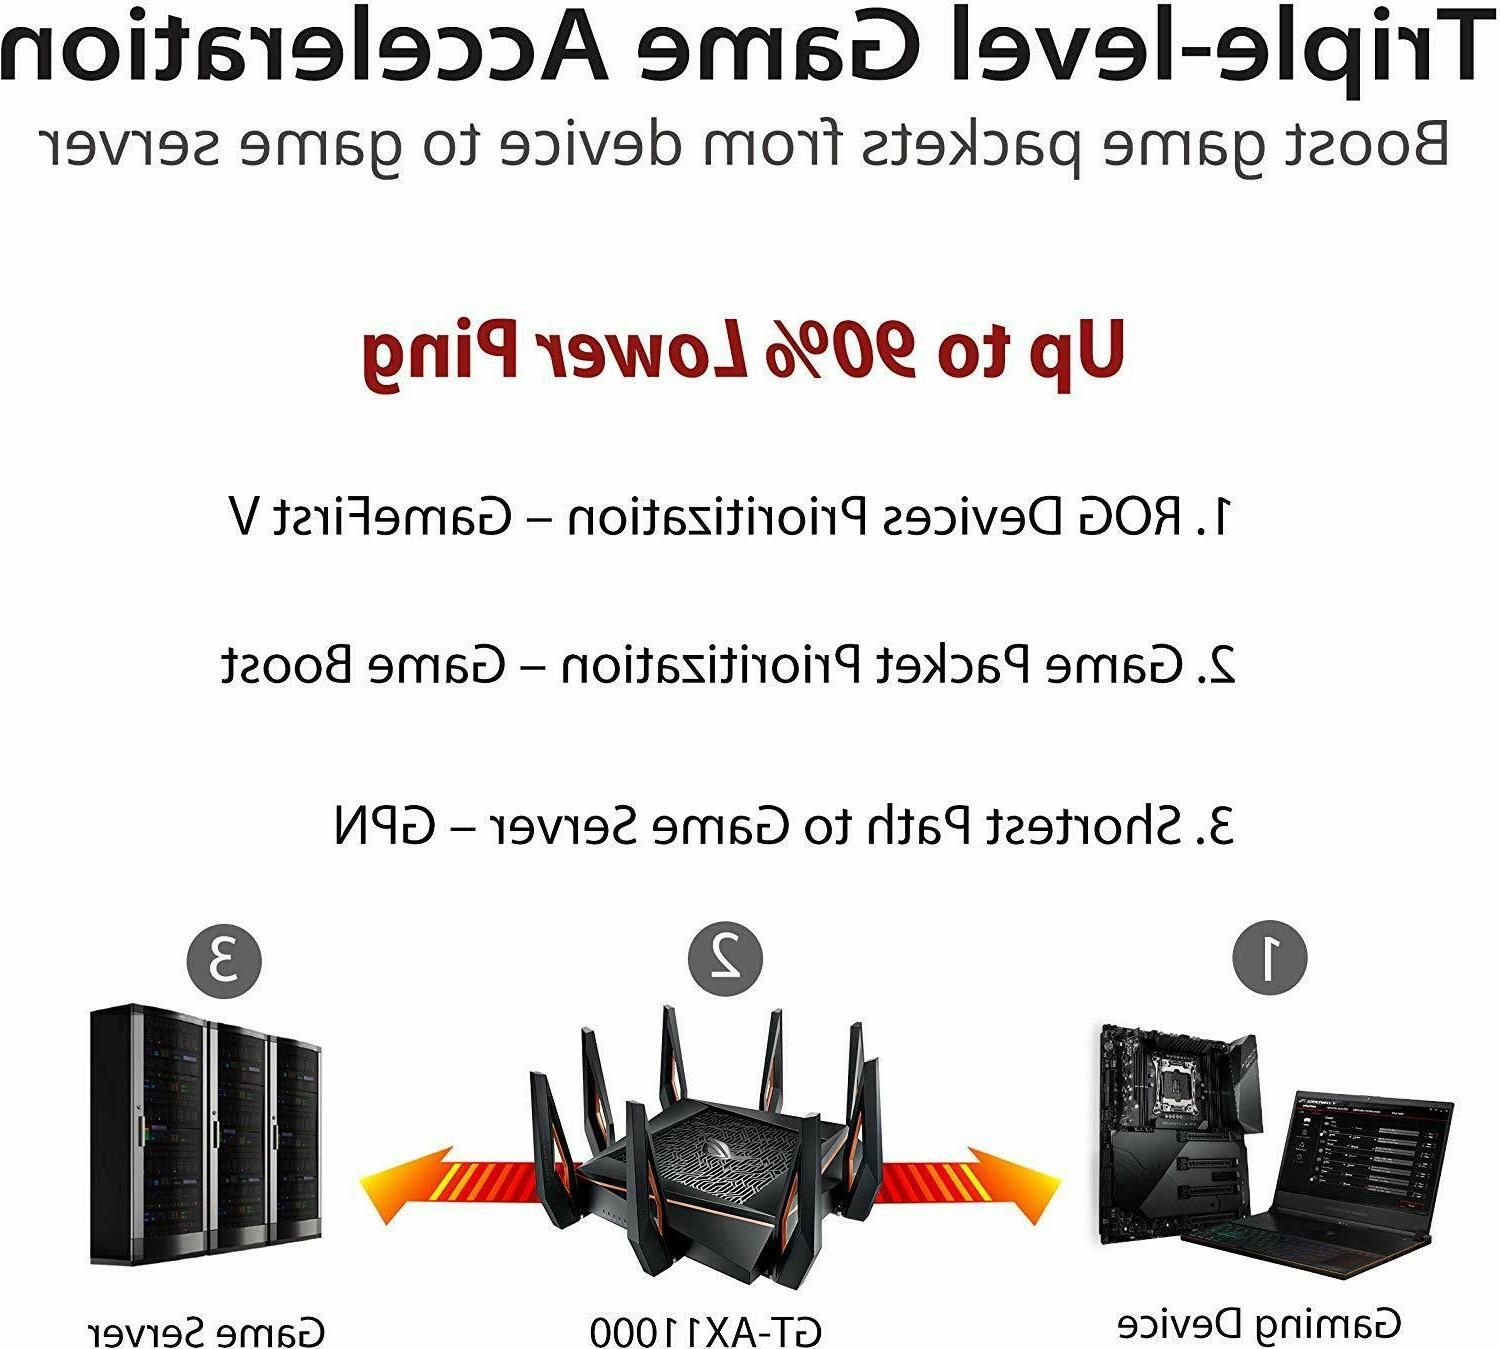 Asus Tri-Band WiFi Router